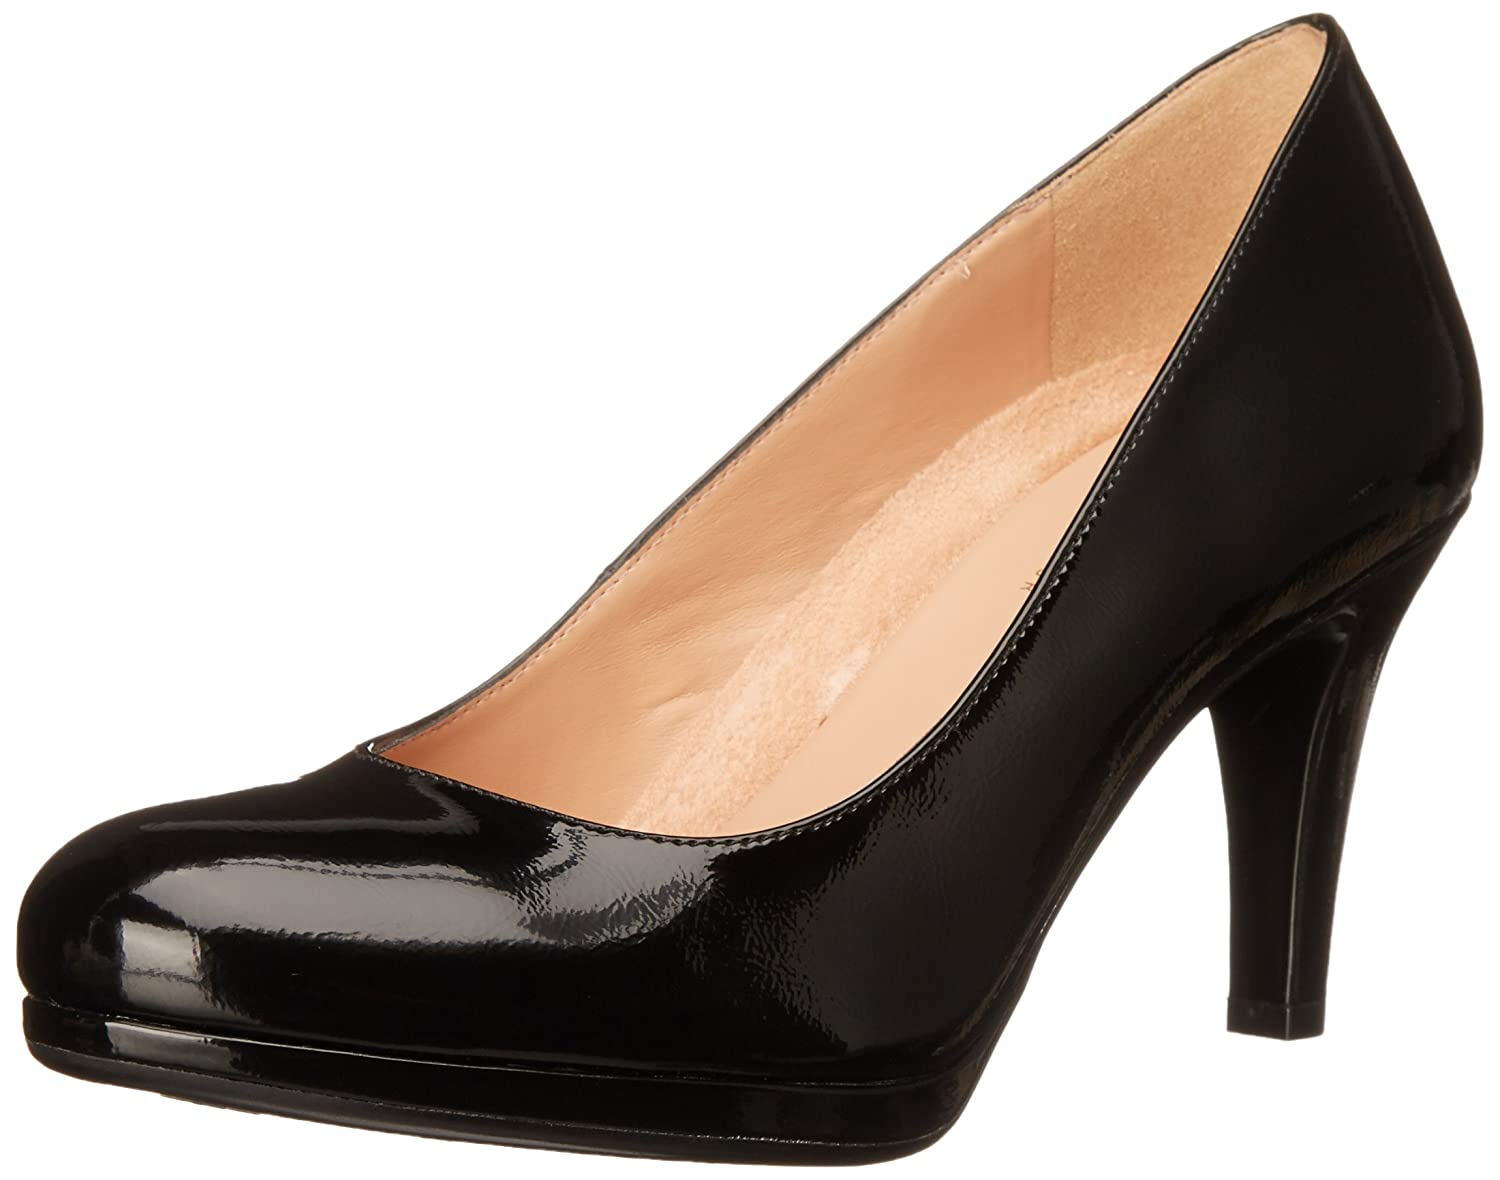 Naturalizer Women's Michelle Dress Pump B00RBVP2IQ 9 N US|Black Shiny